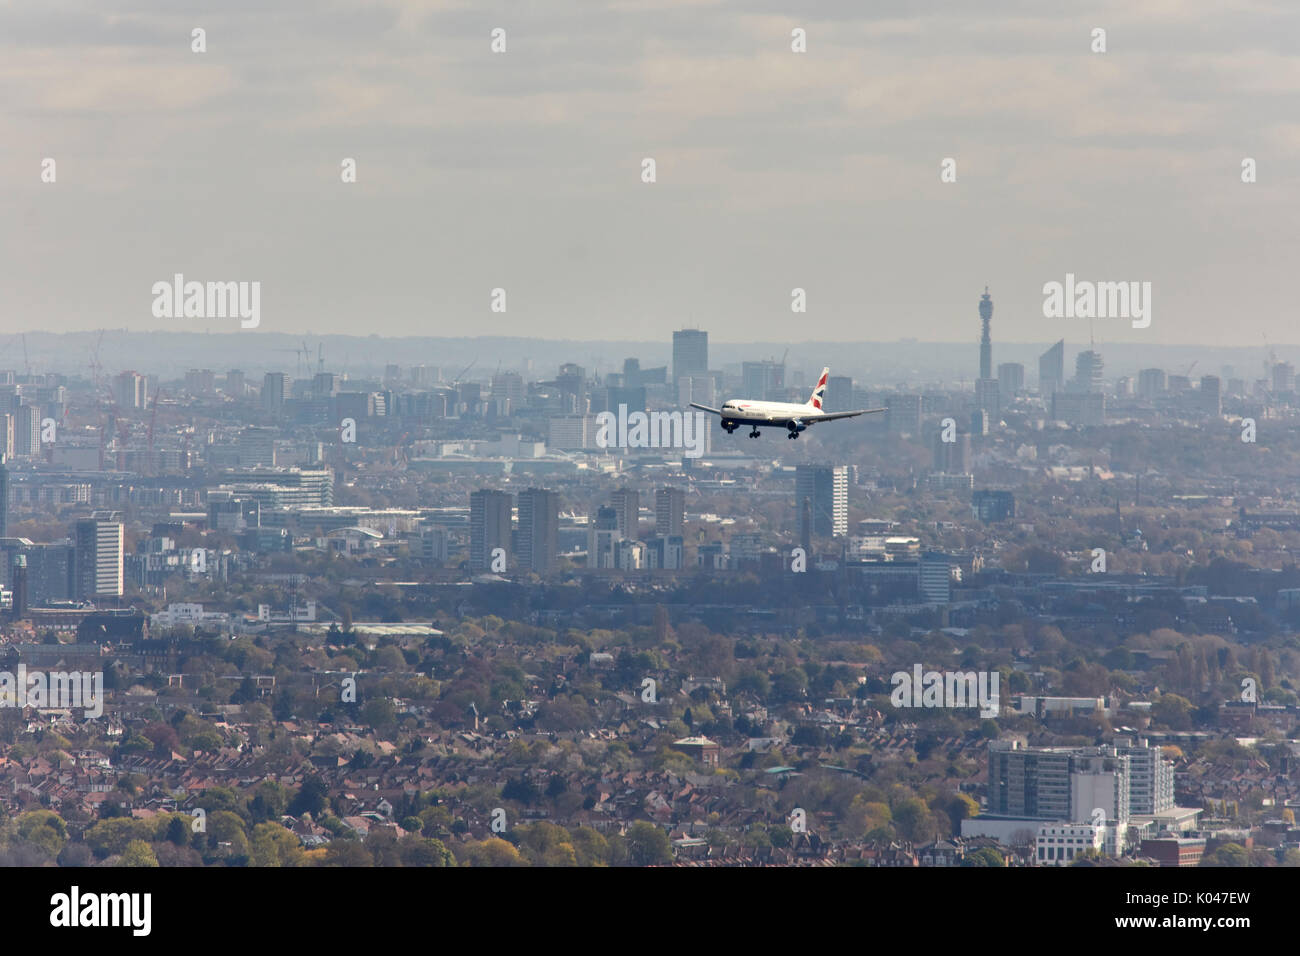 An aerial view of a passenger aircraft on final approach to Heathrow with the London skyline visible in the distance - Stock Image